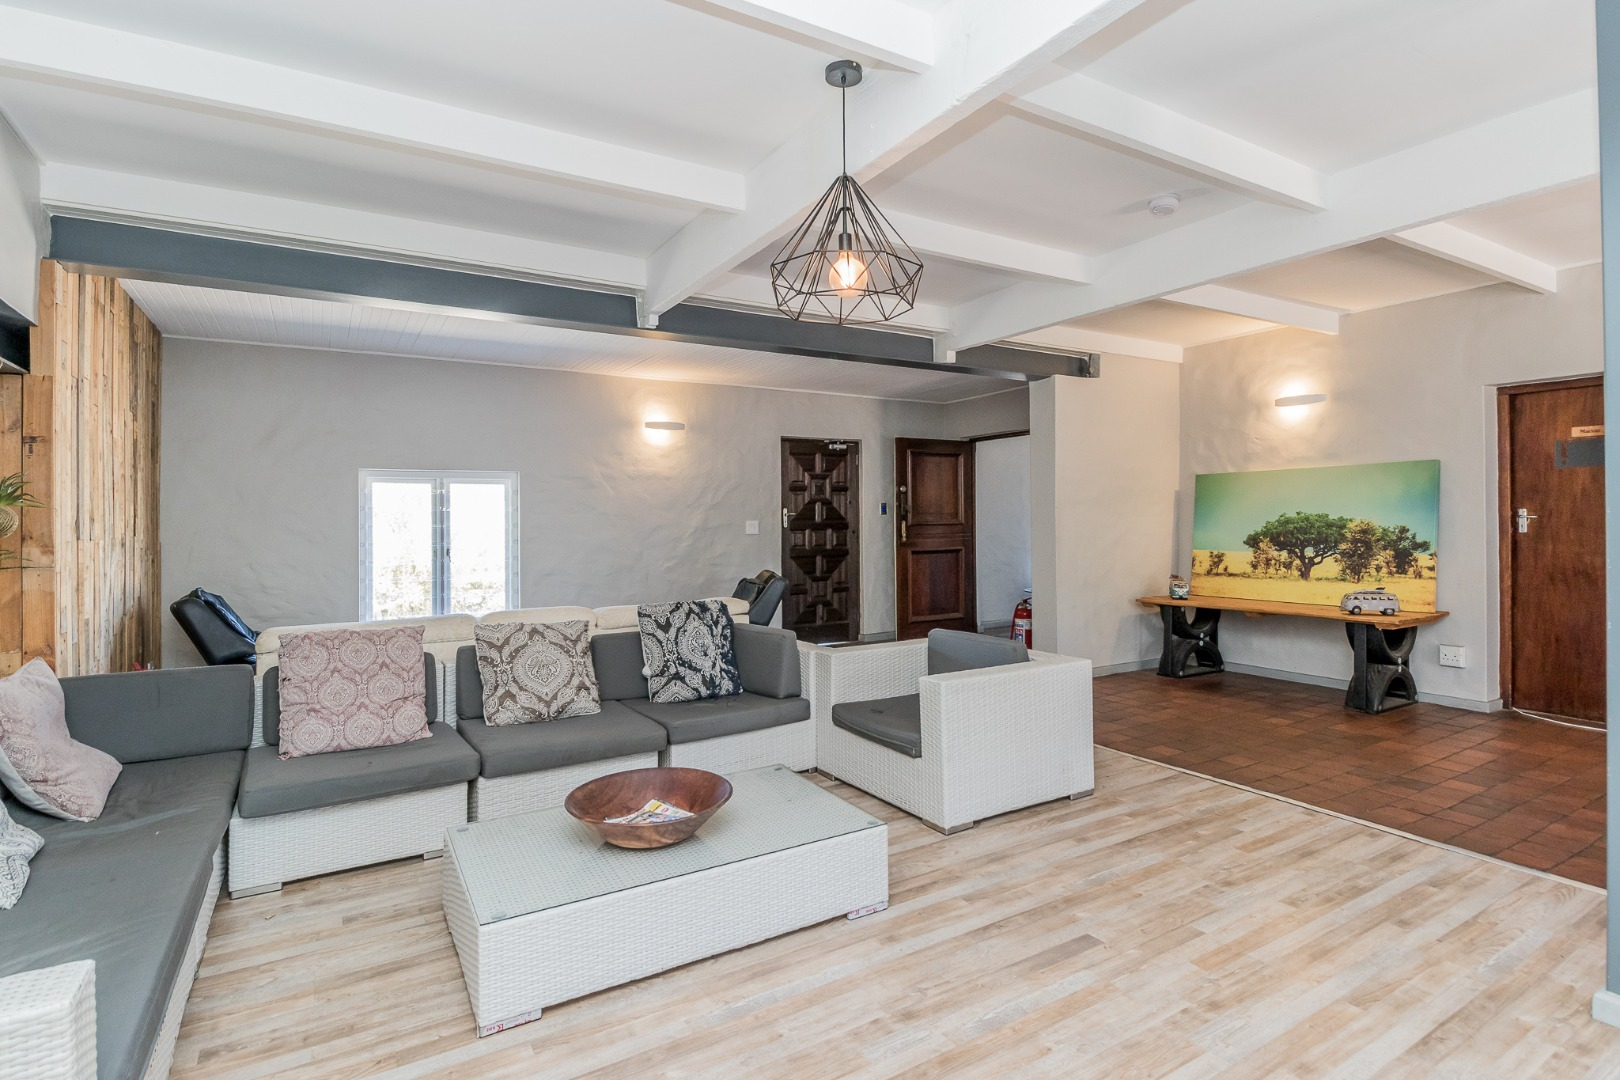 12 Bedroom House For Sale in Table View